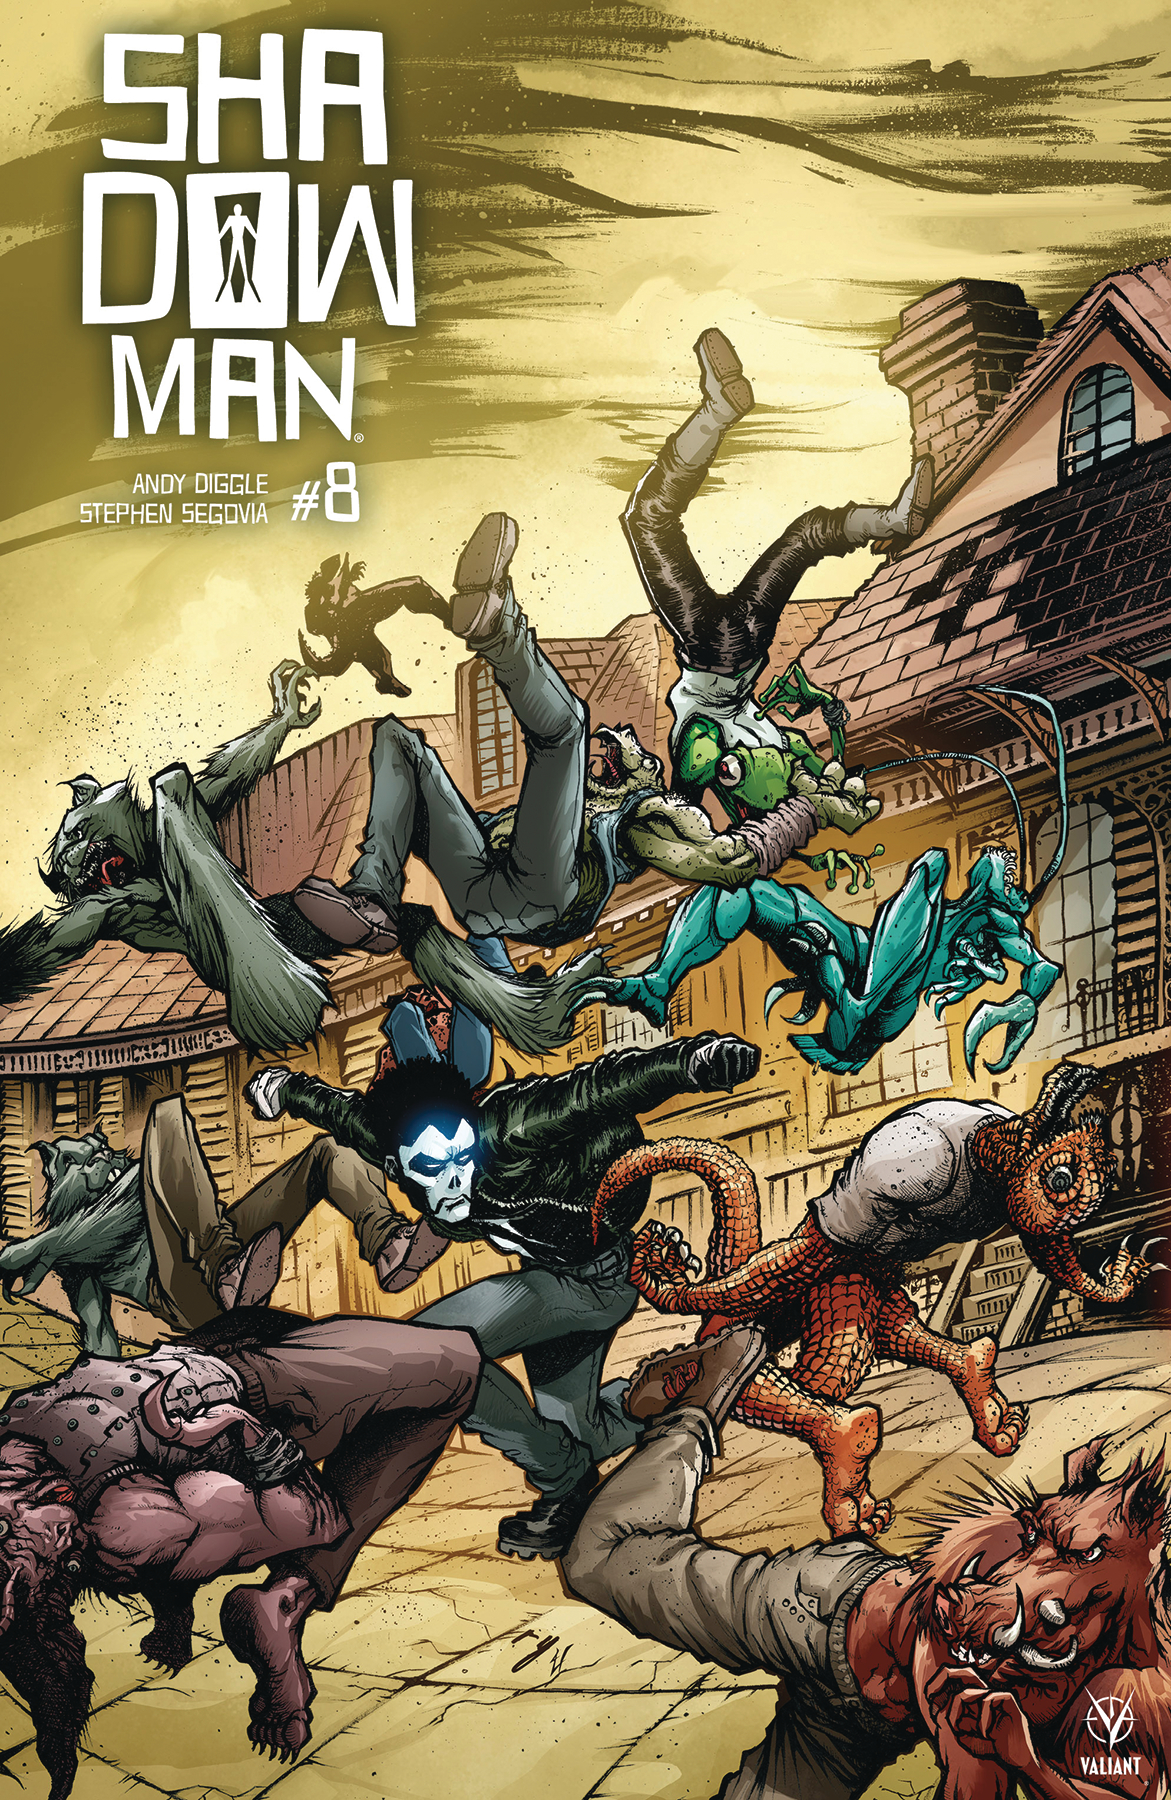 SHADOWMAN (2018) #8 (NEW ARC) CVR D 20 COPY INCV INTERLOCKIN